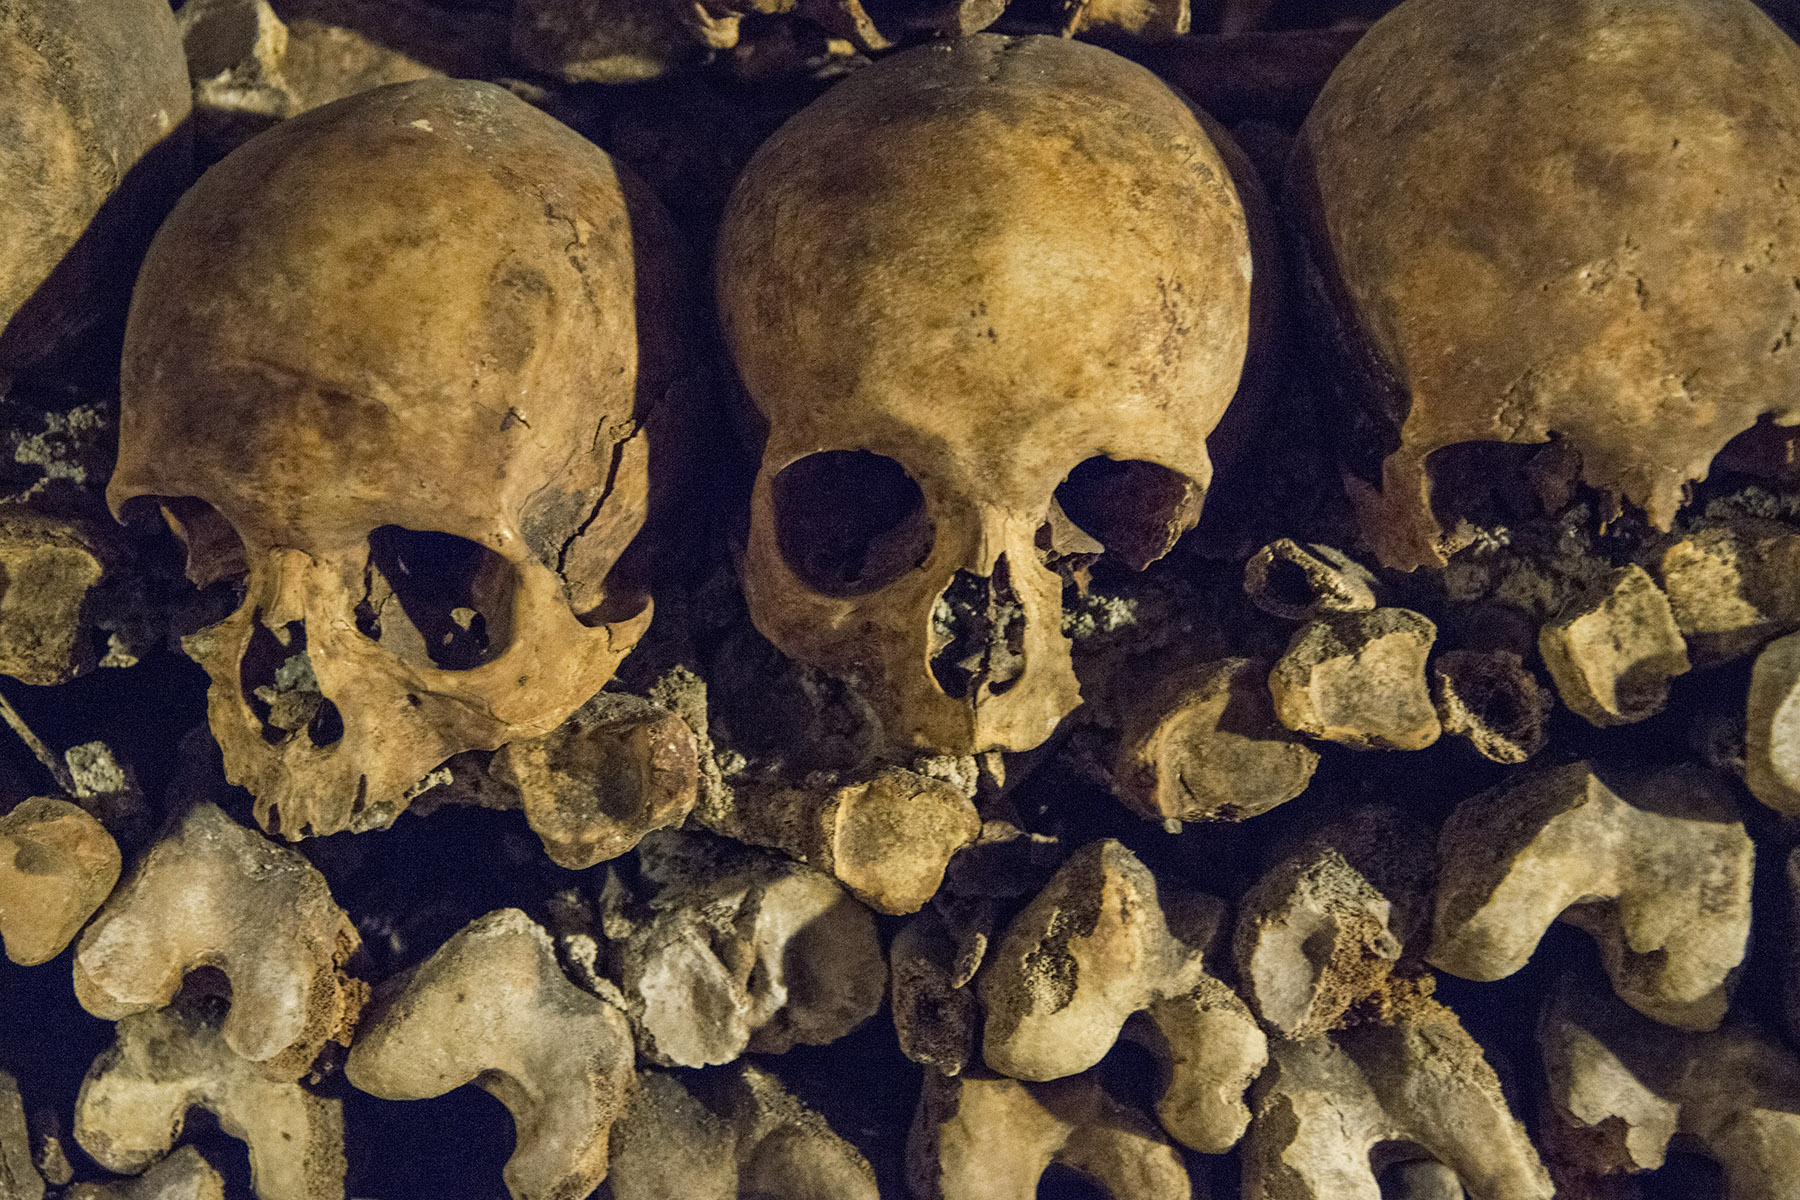 The Paris Catacombs contain 6 million skeletons, arranged in neat piles.  On the public tour, you only see a very small fraction.  My recommendation is to purchase tickets in advance online or come in the late afternoon when it's less crowded.